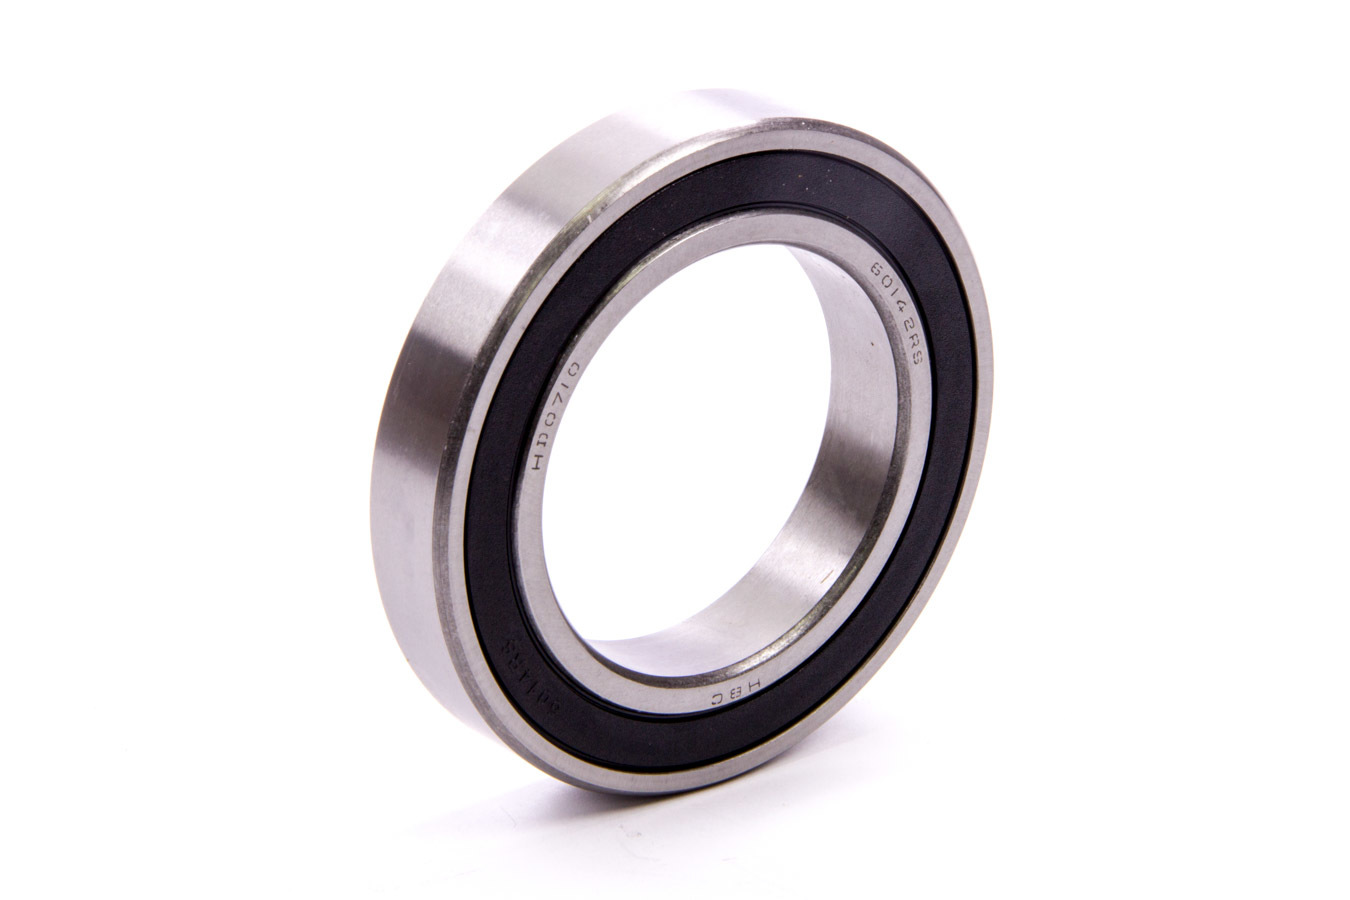 M & W Aluminum Products 6014-2RS Birdcage Bearing, 2.750 in ID, 4.334 in OD, 20 mm Wide, Single Row, Steel, M and W Aluminum Birdcage, Each